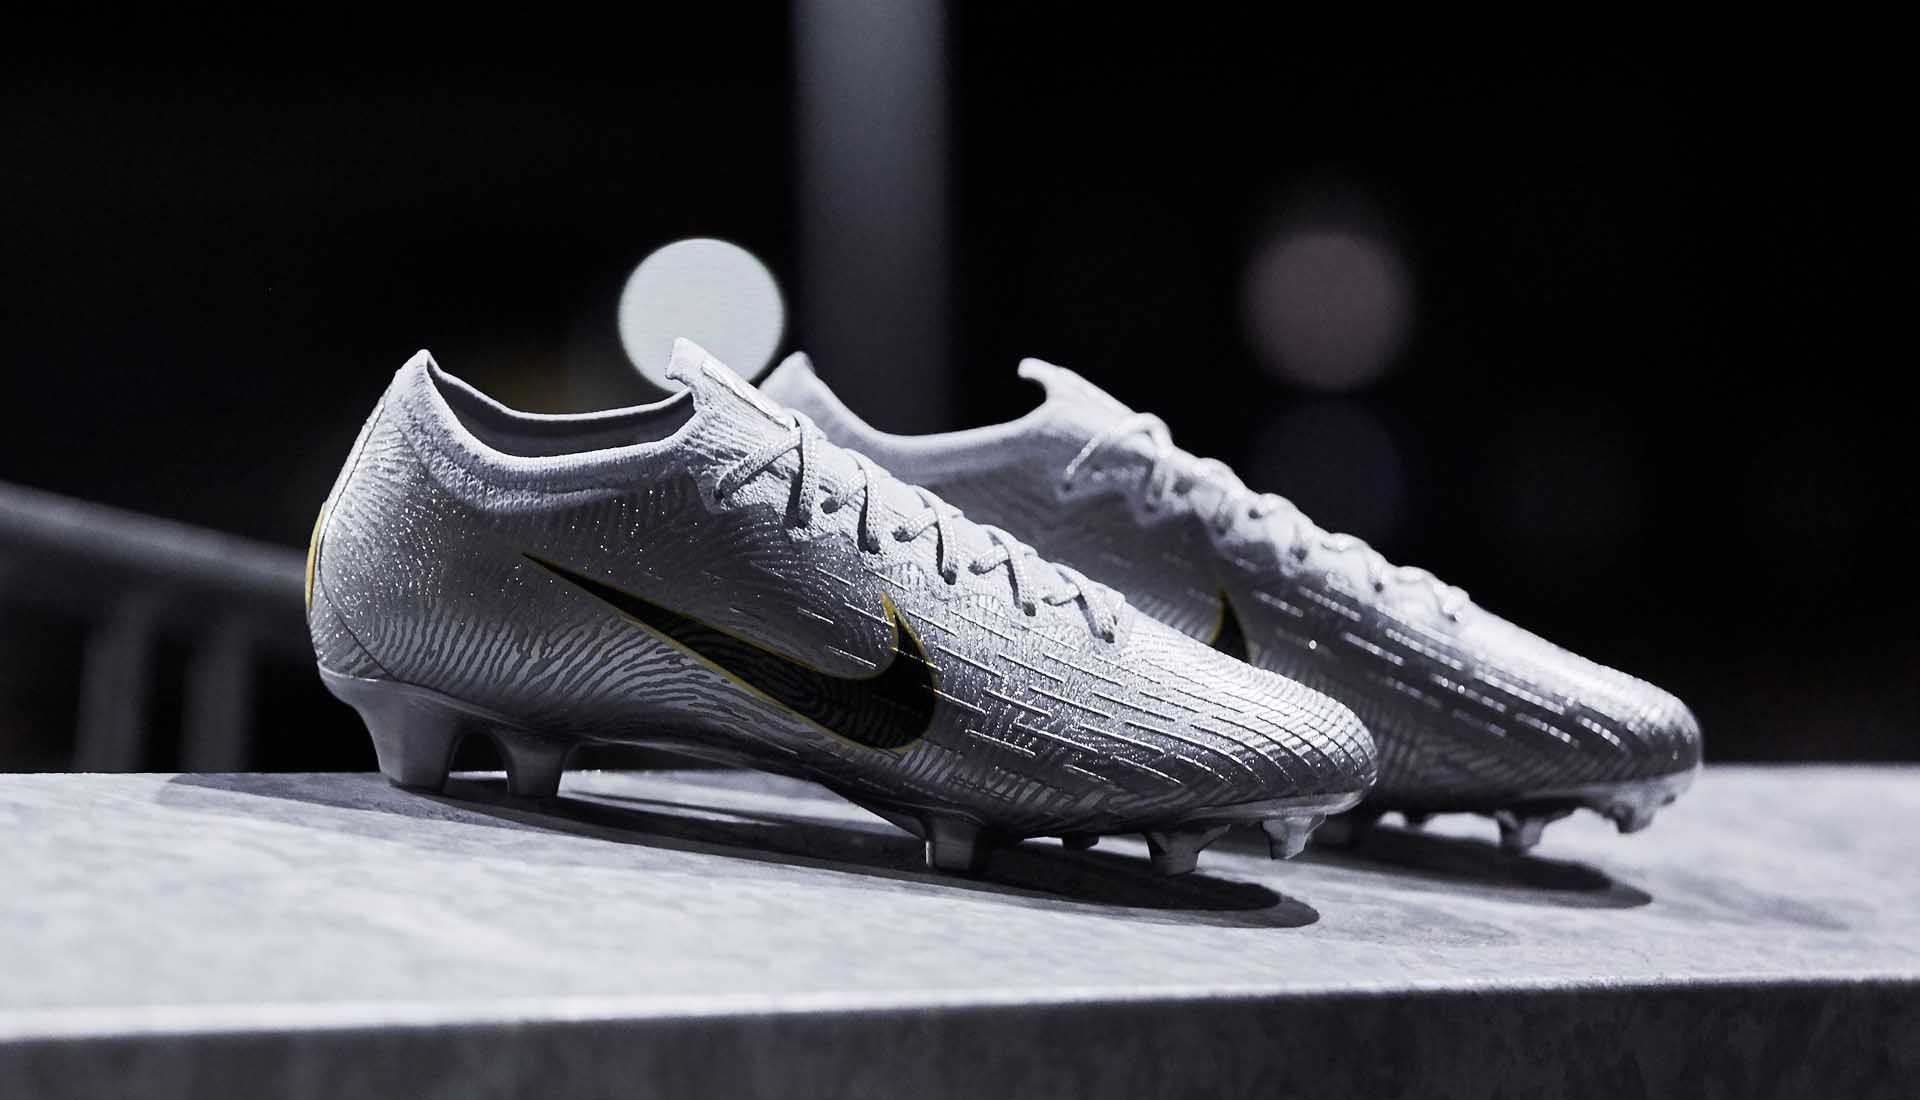 cdff9c1b4 Nike Launch Two Limited Edition 'Golden Touch' Mercurials - SoccerBible.